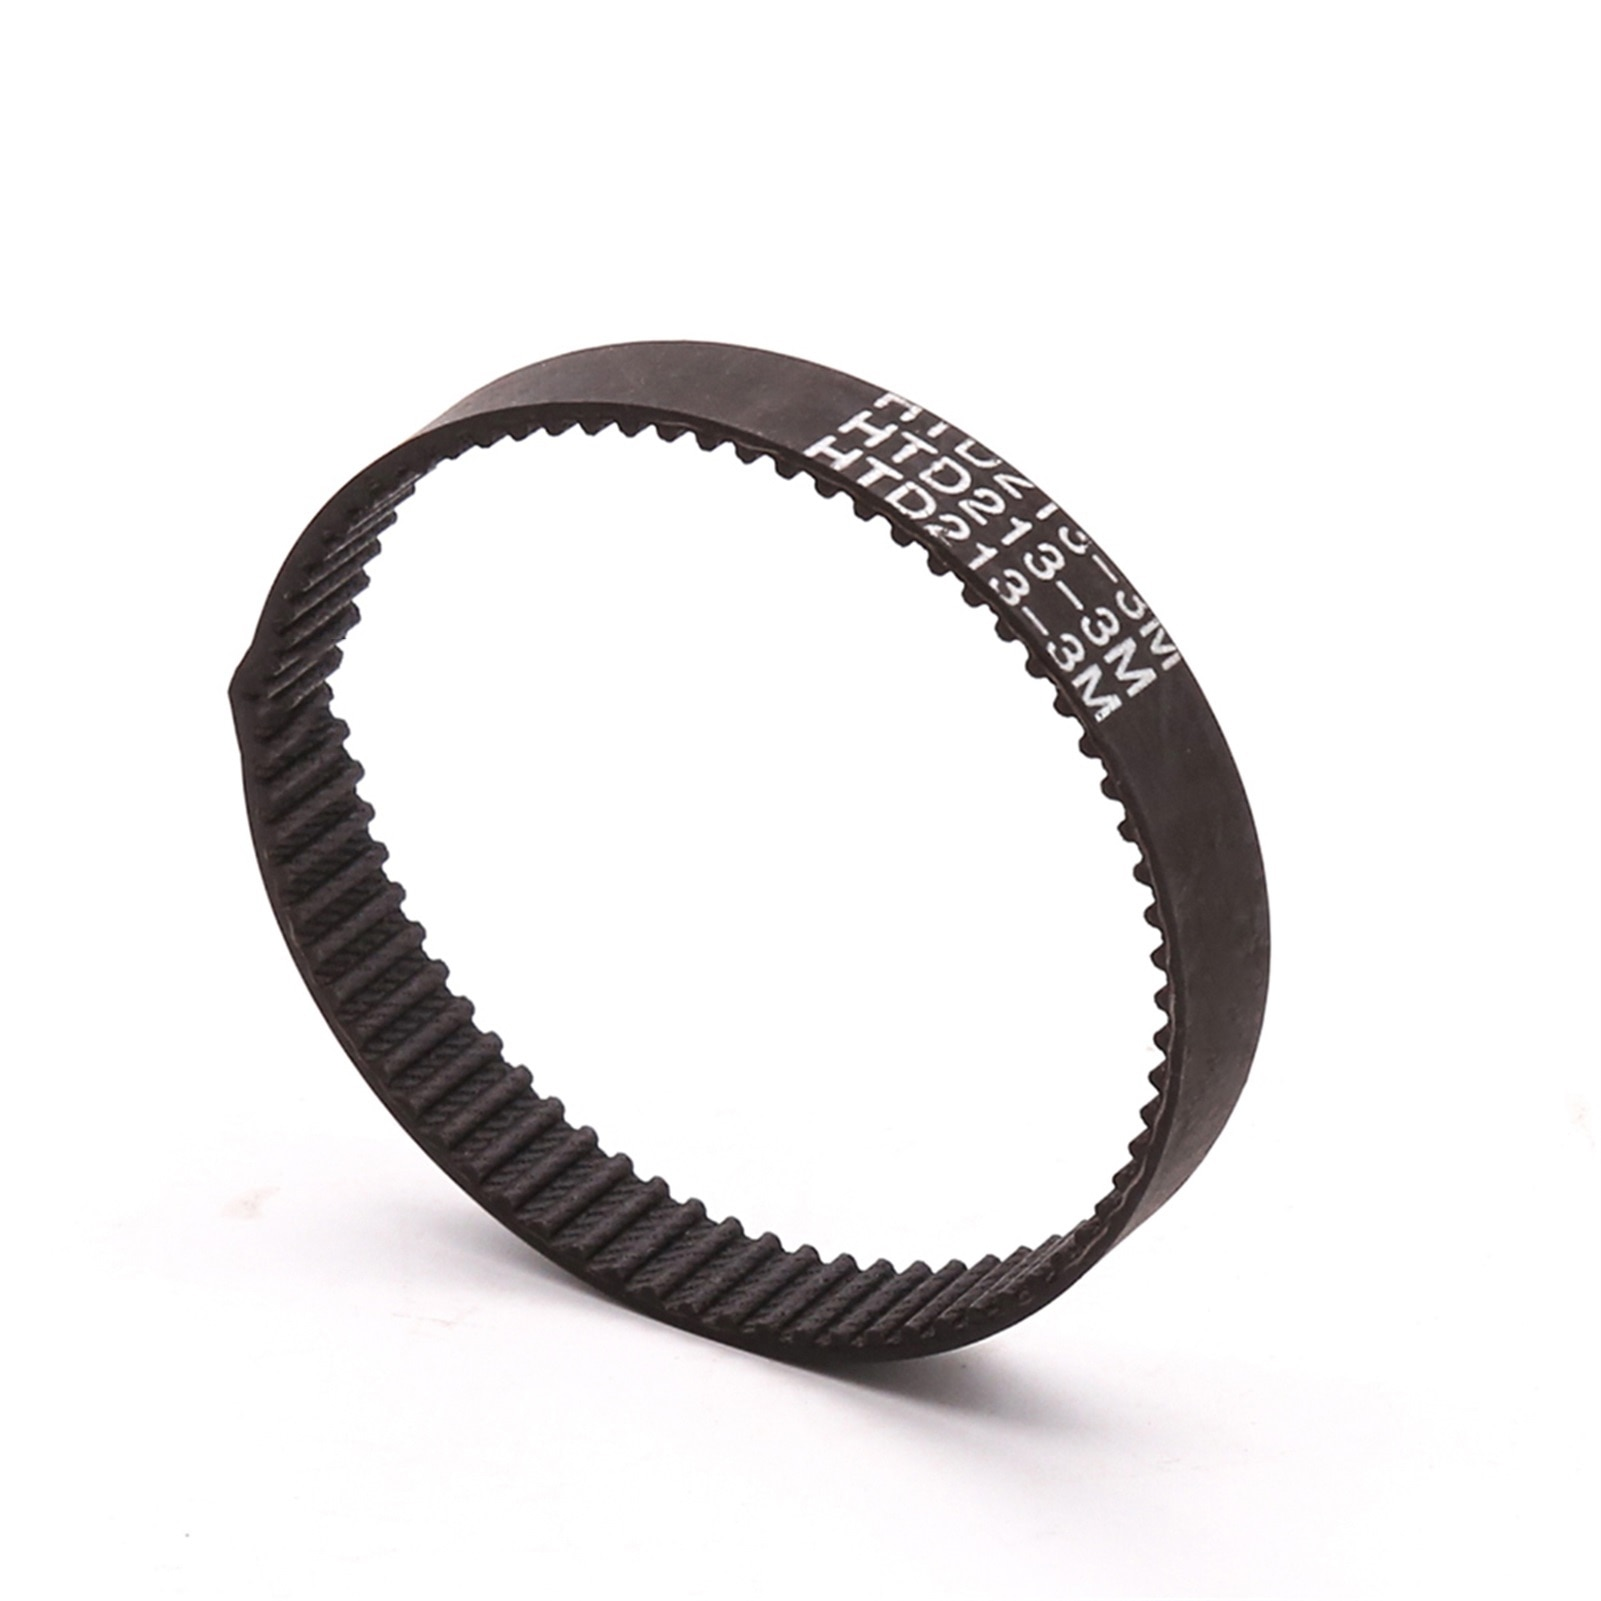 htd 3m timing belt width rubbe toothed belt closed loop synchronous belt pitch 5mm 5M Closed Loop Synchronous Belt, Timing Belt, Width 15mm, Pitch 5mm ,Arc Tooth Length